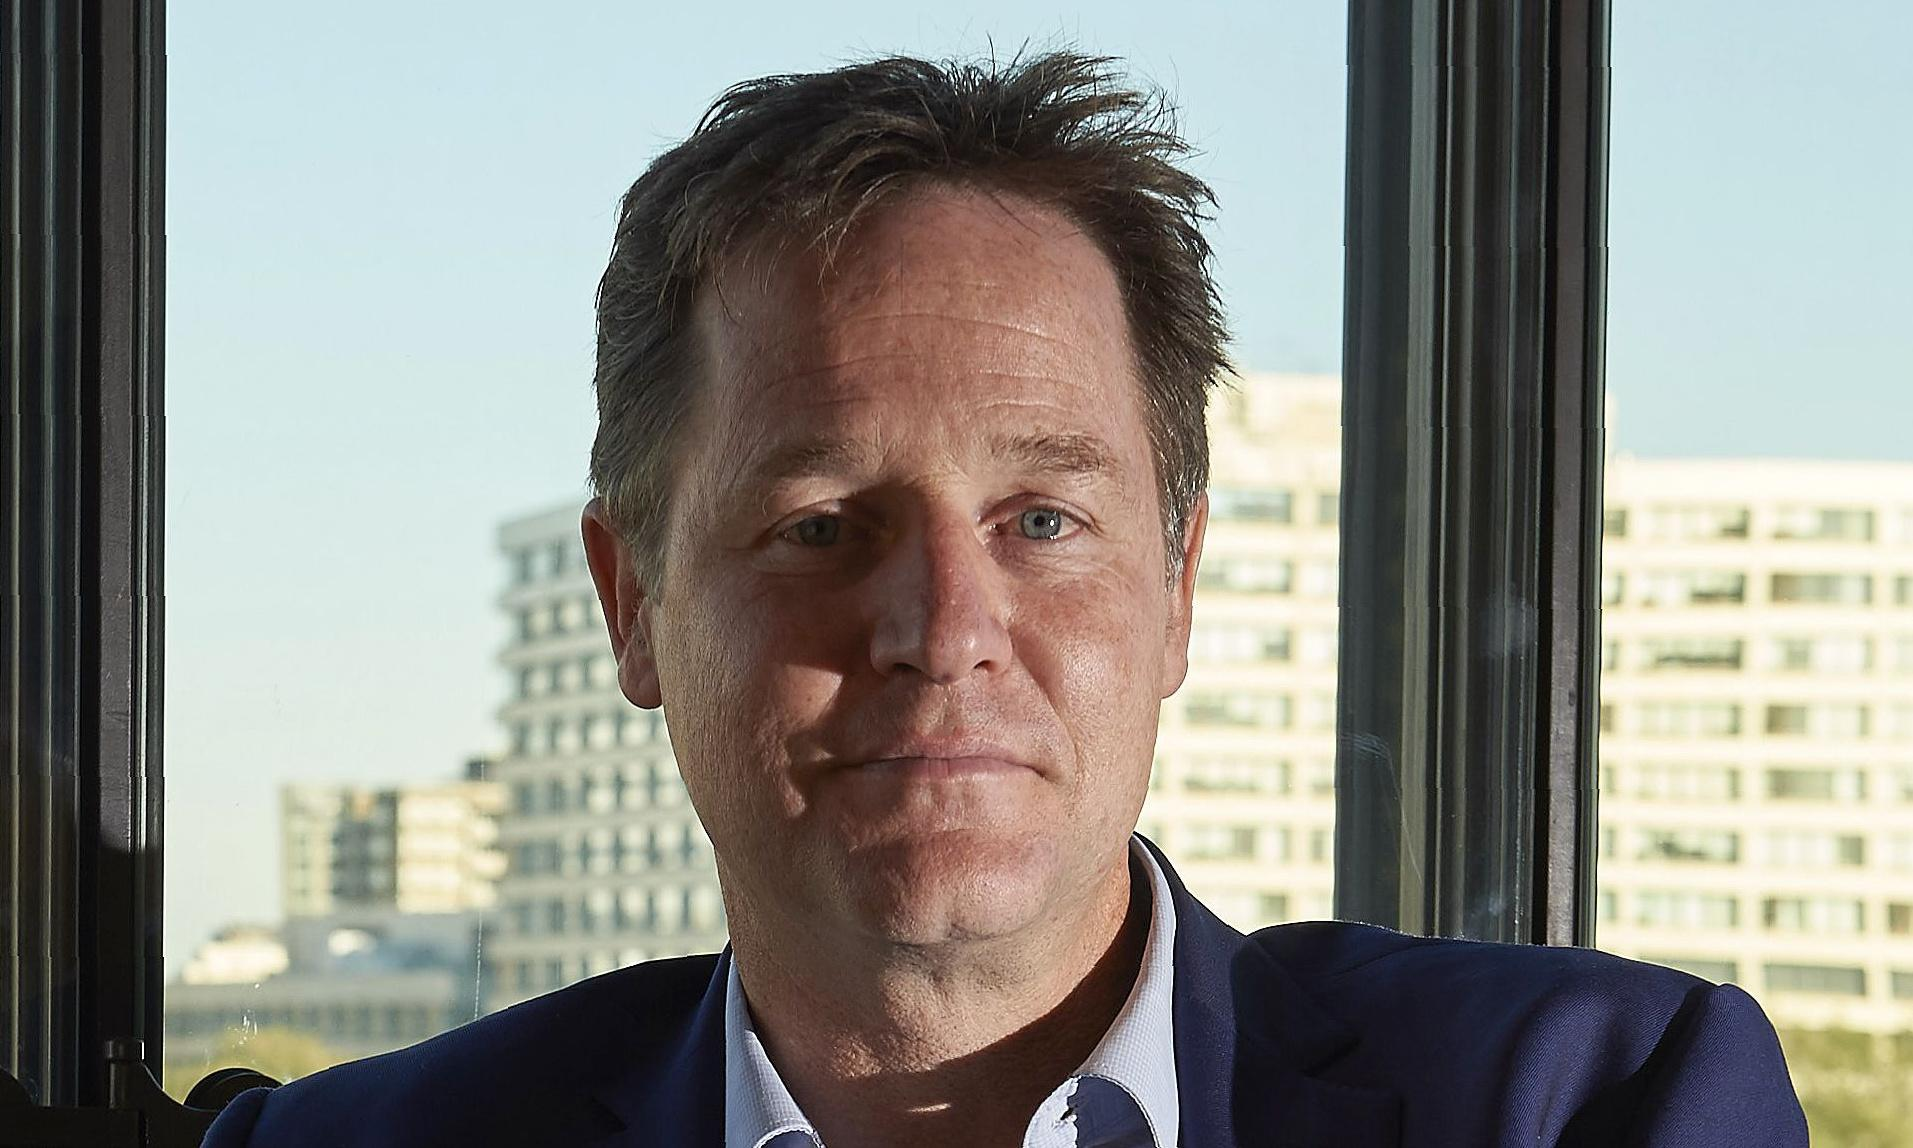 EU tells Facebook's Nick Clegg to rethink ad rules for elections